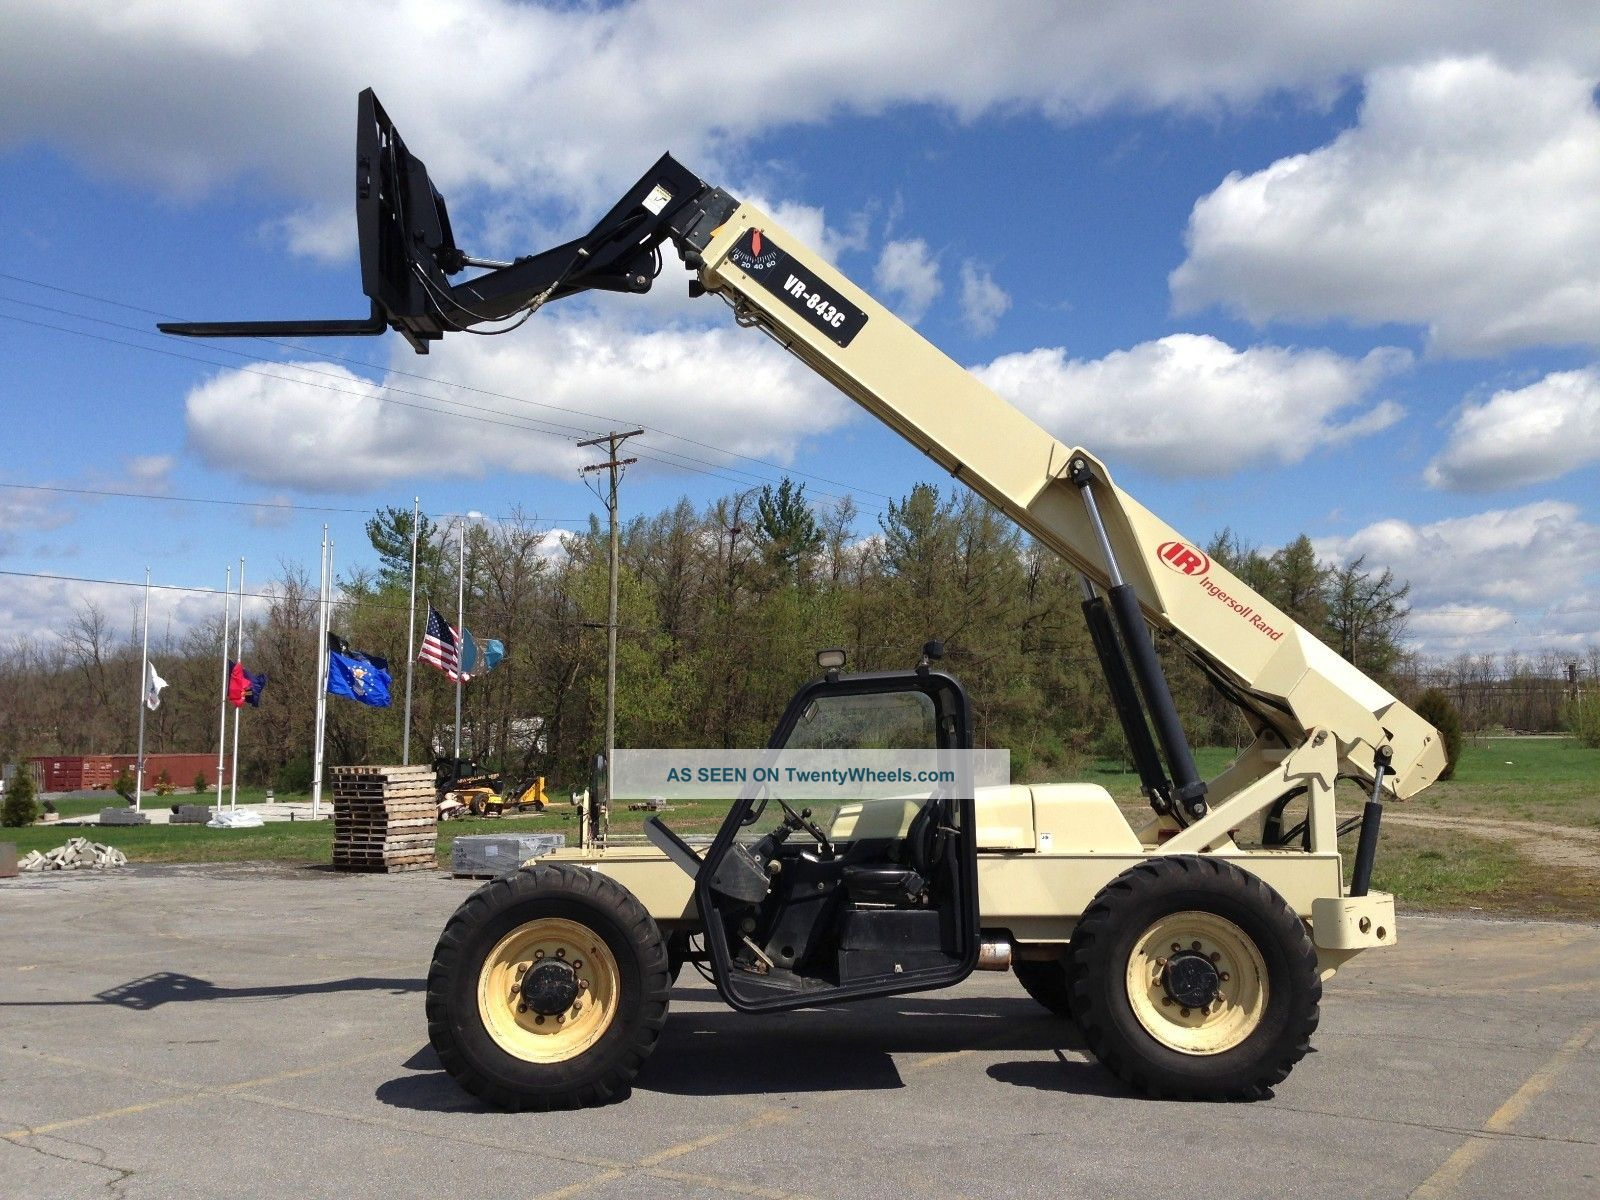 2007 Ingersoll - Rand Vr - 843c Telescopic Forklift Telehandler Lull Reach Fork Scissor & Boom Lifts photo